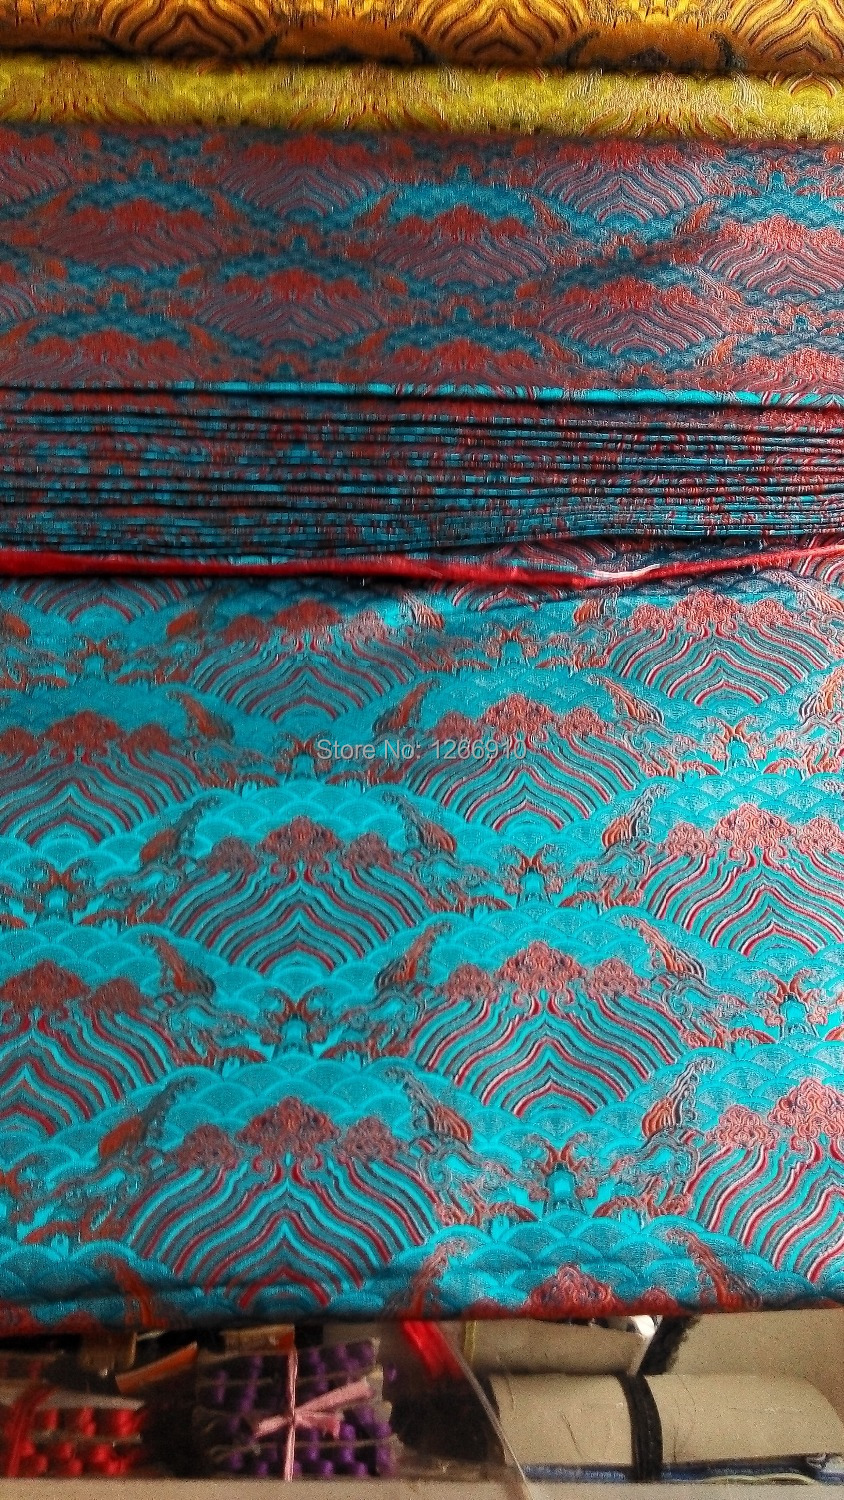 Online buy wholesale sea silk yarn from china sea silk for Most popular fabric patterns